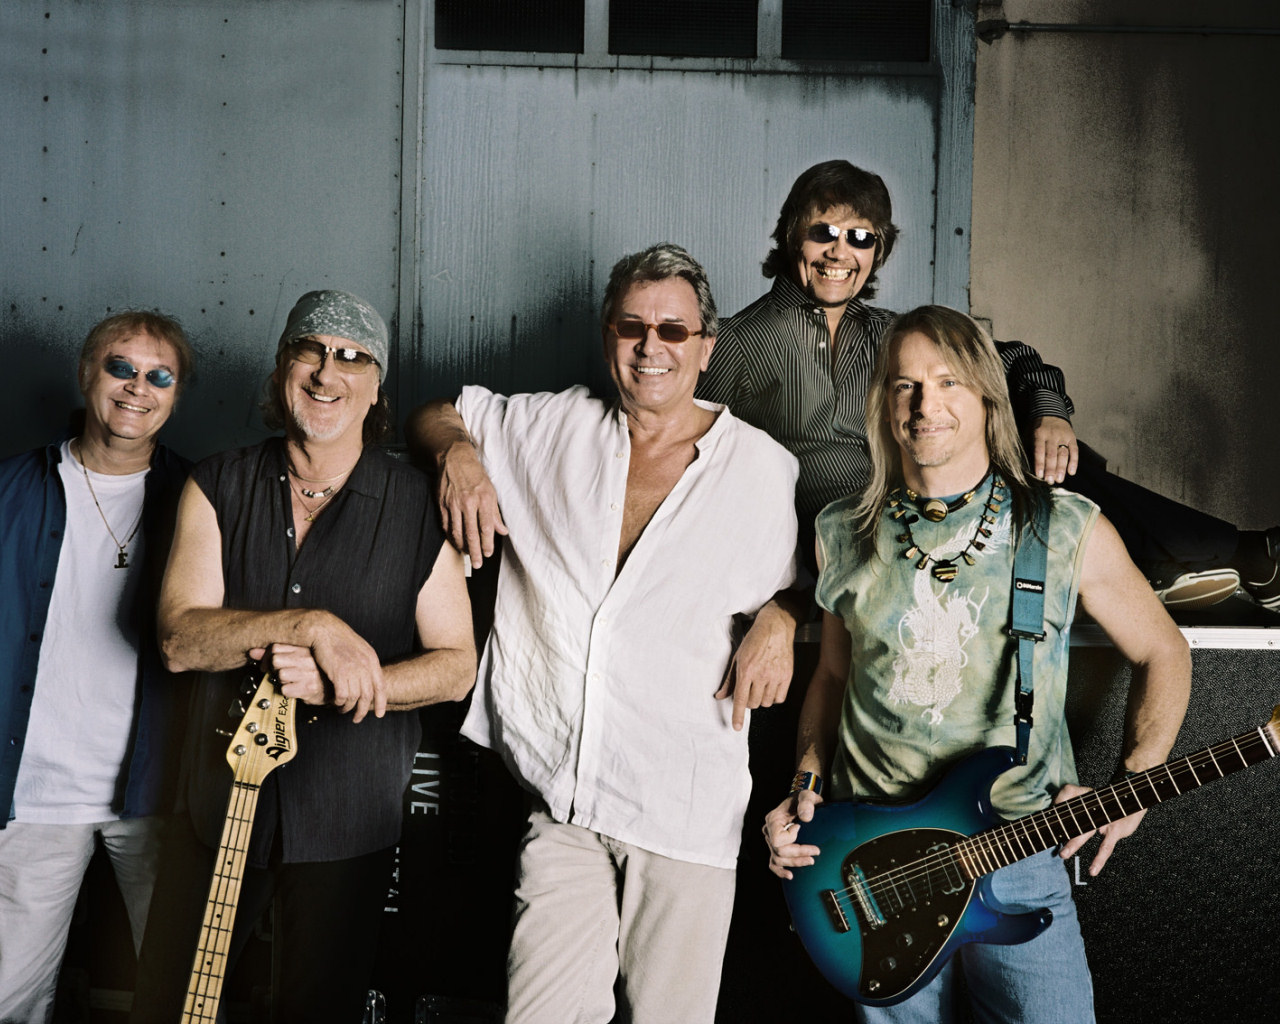 Deep_Purple_01_1280x1024.jpg